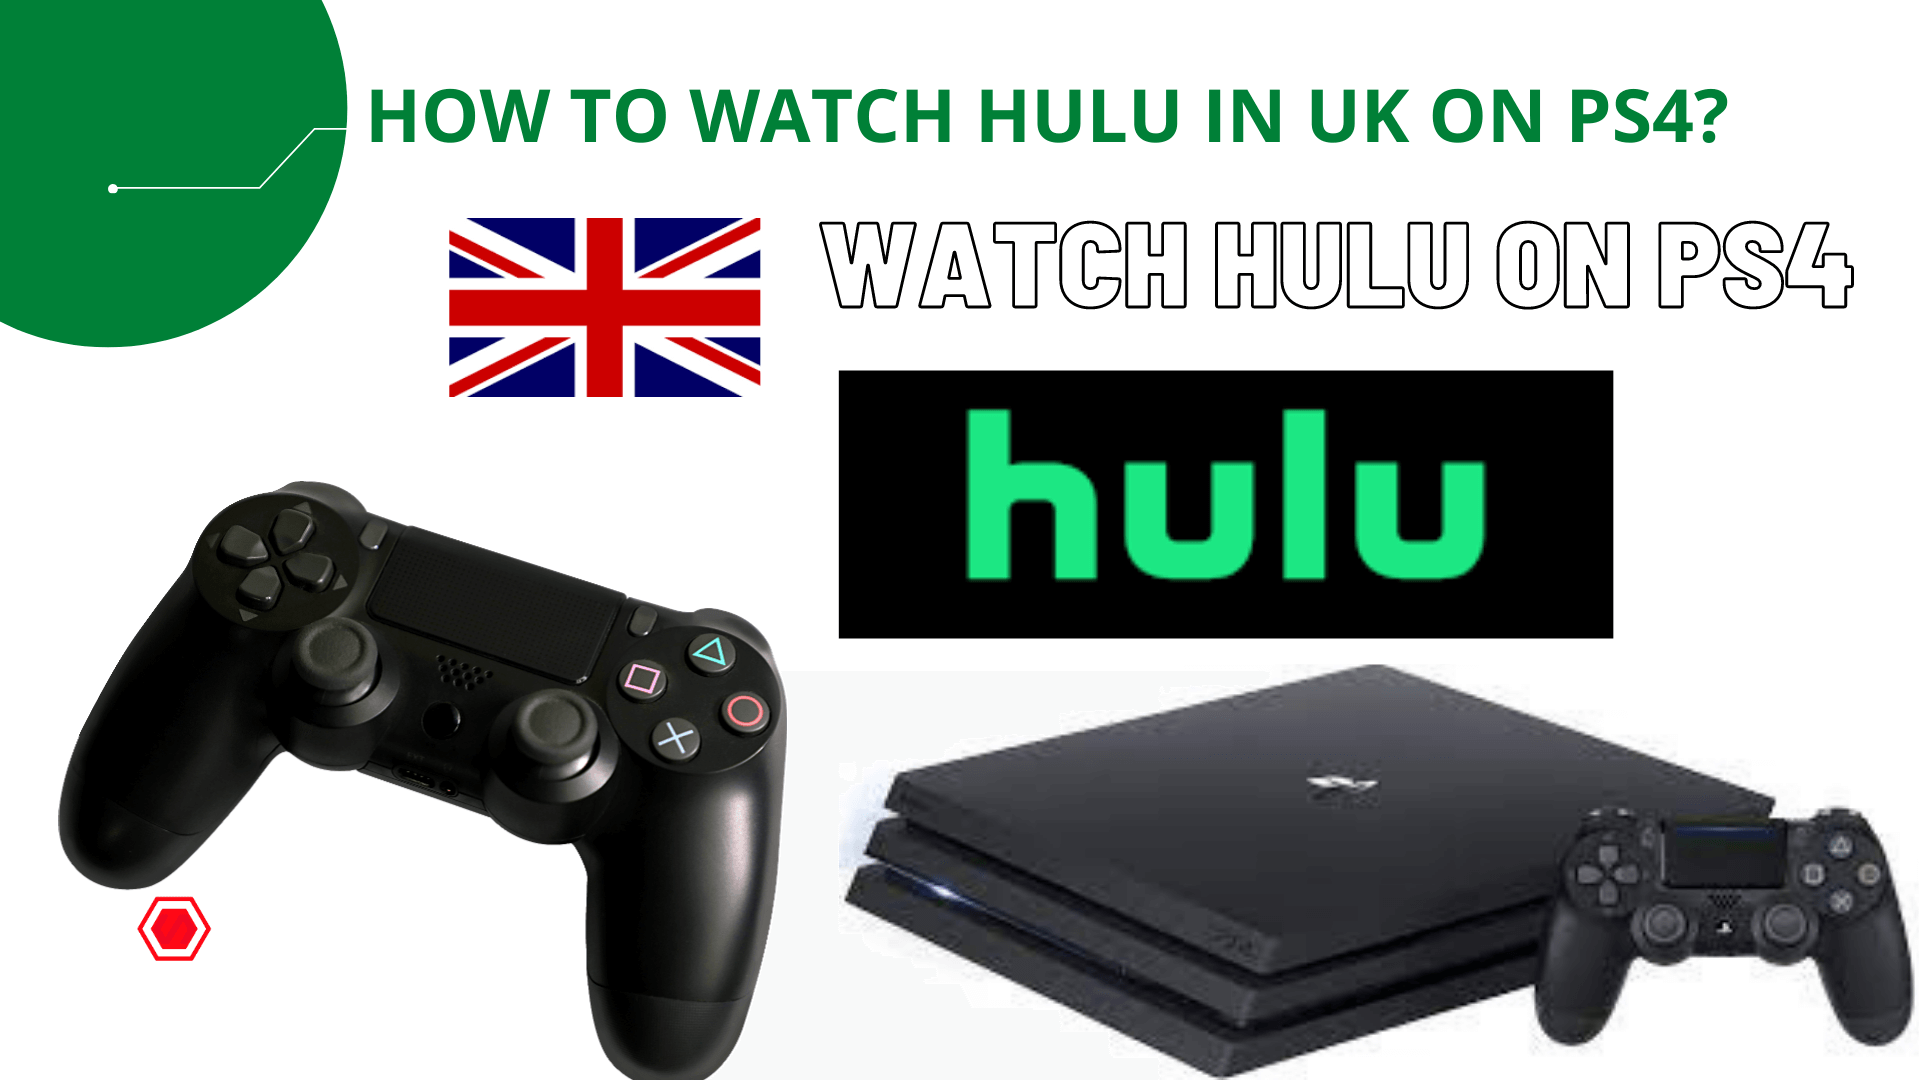 How to Watch Hulu in UK on PS4